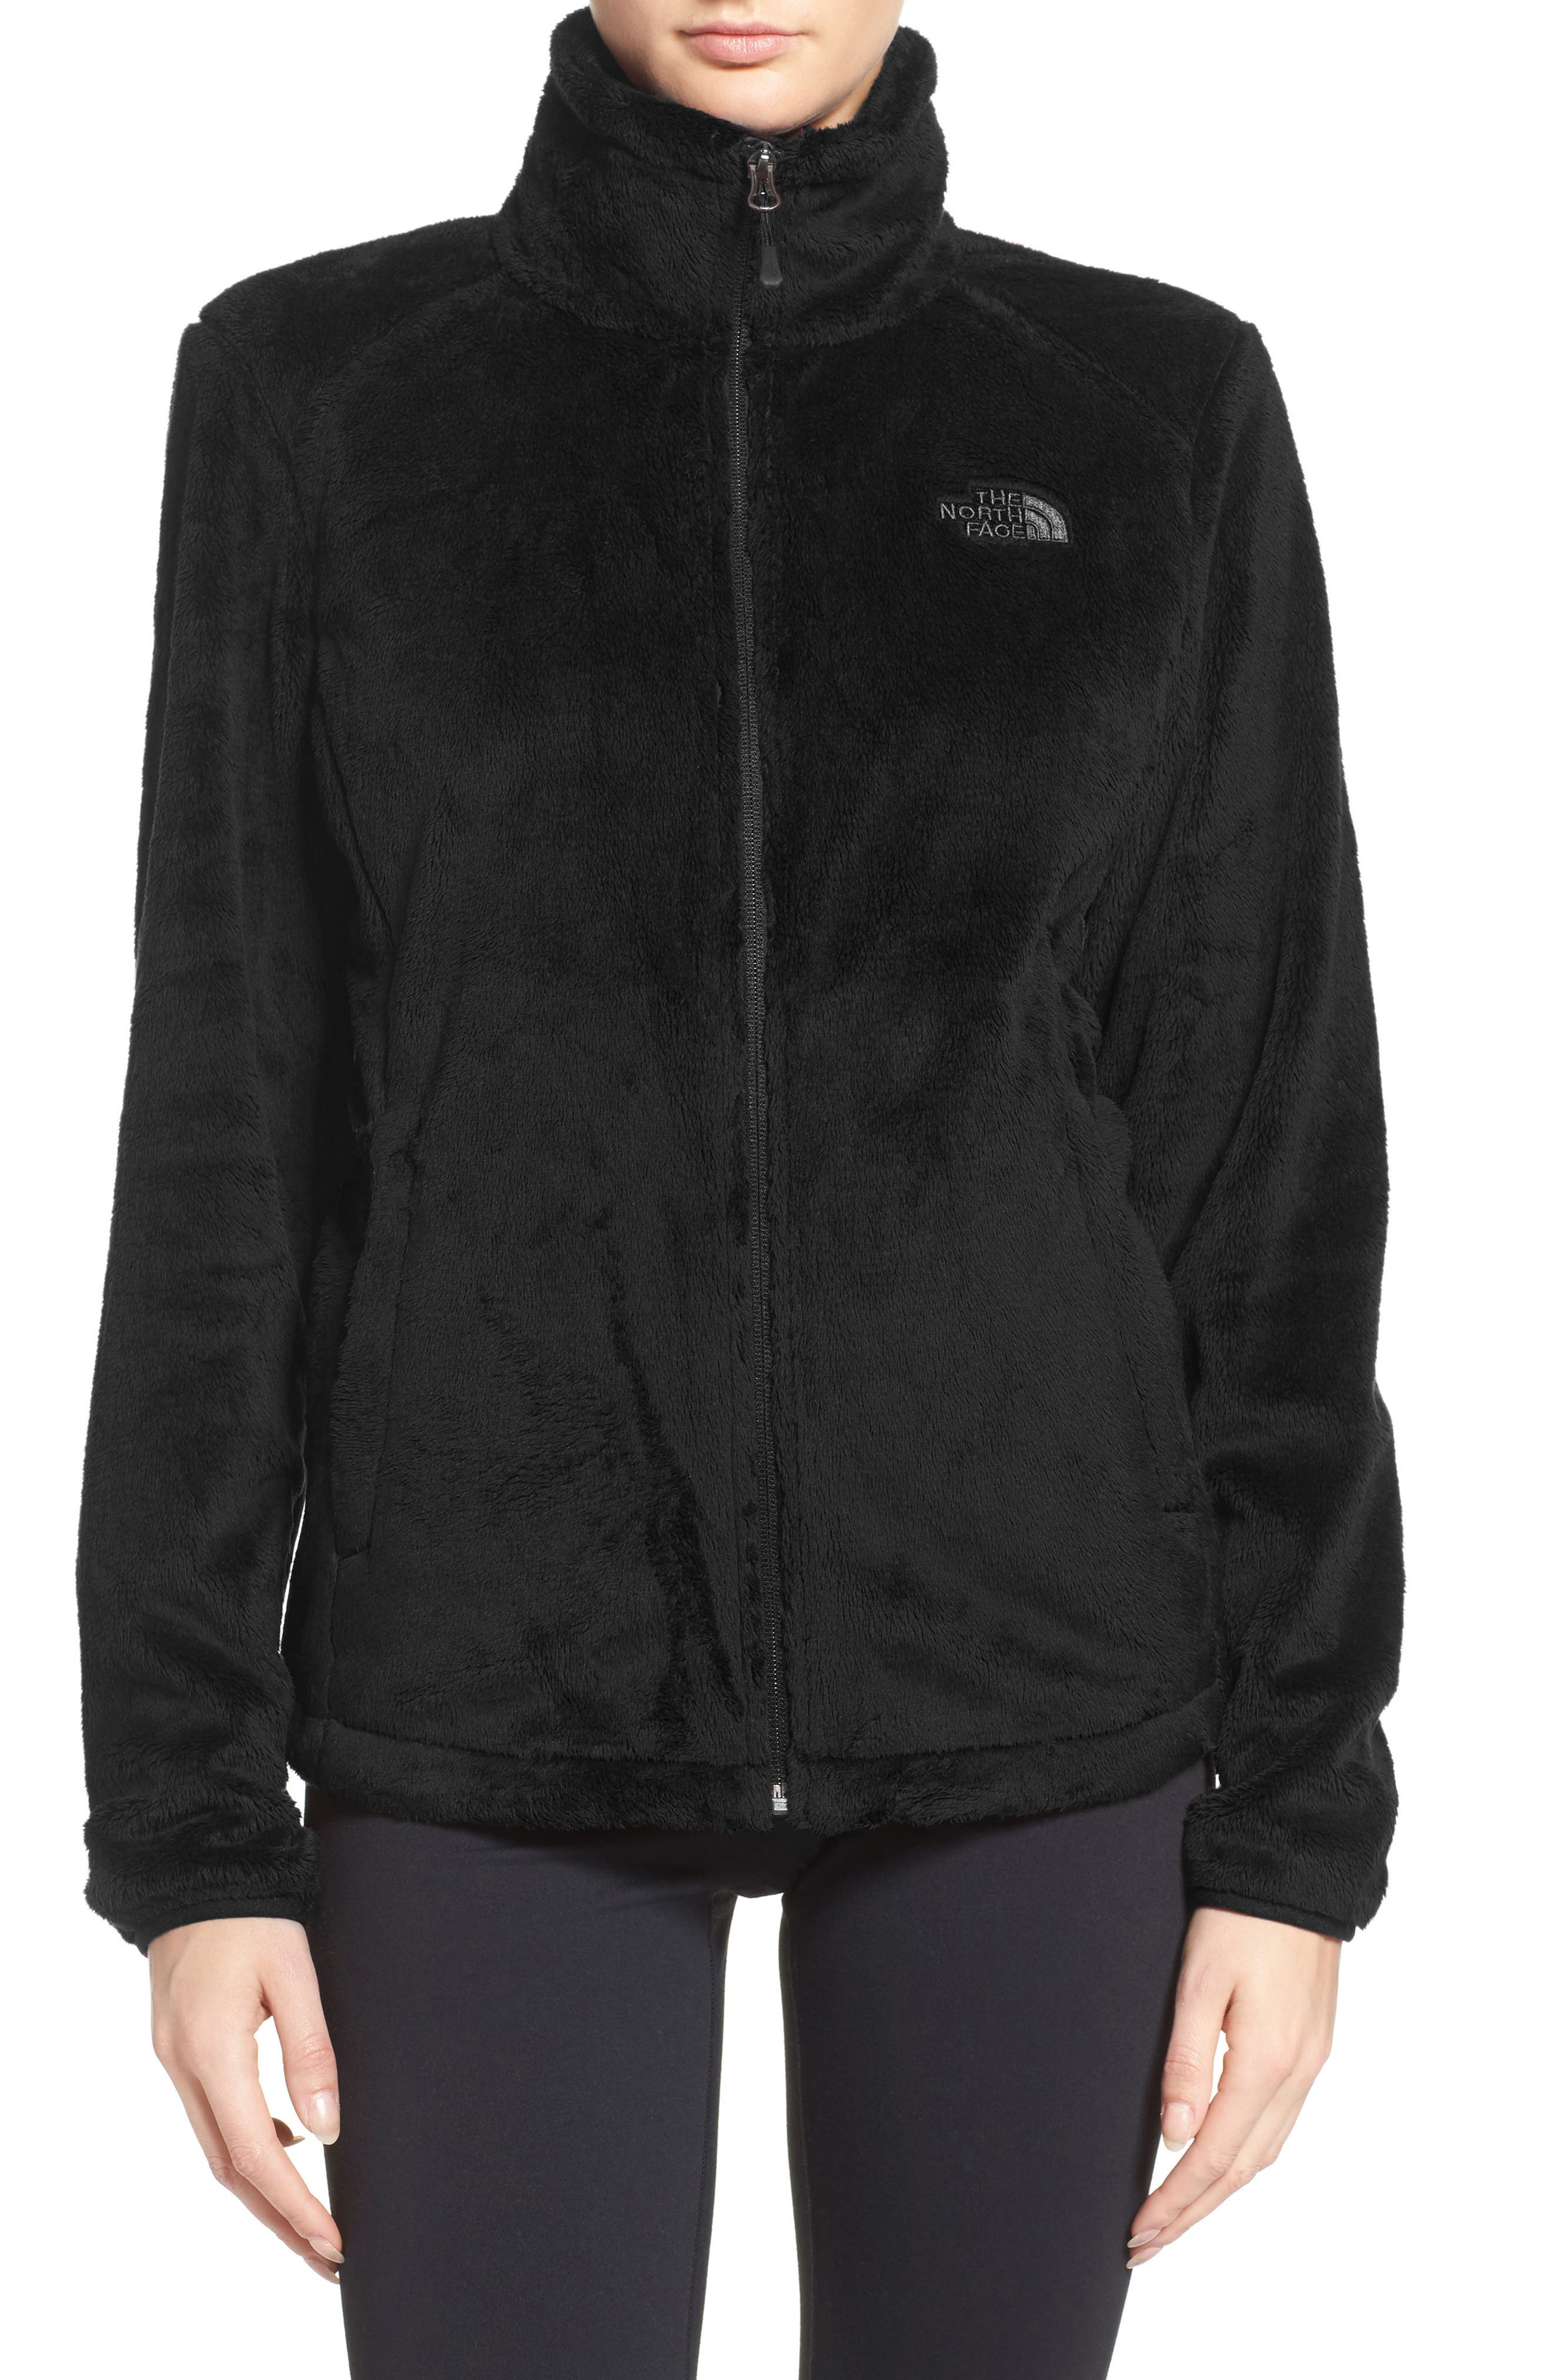 Alternate Image 1 Selected - The North Face 'Osito 2' Jacket